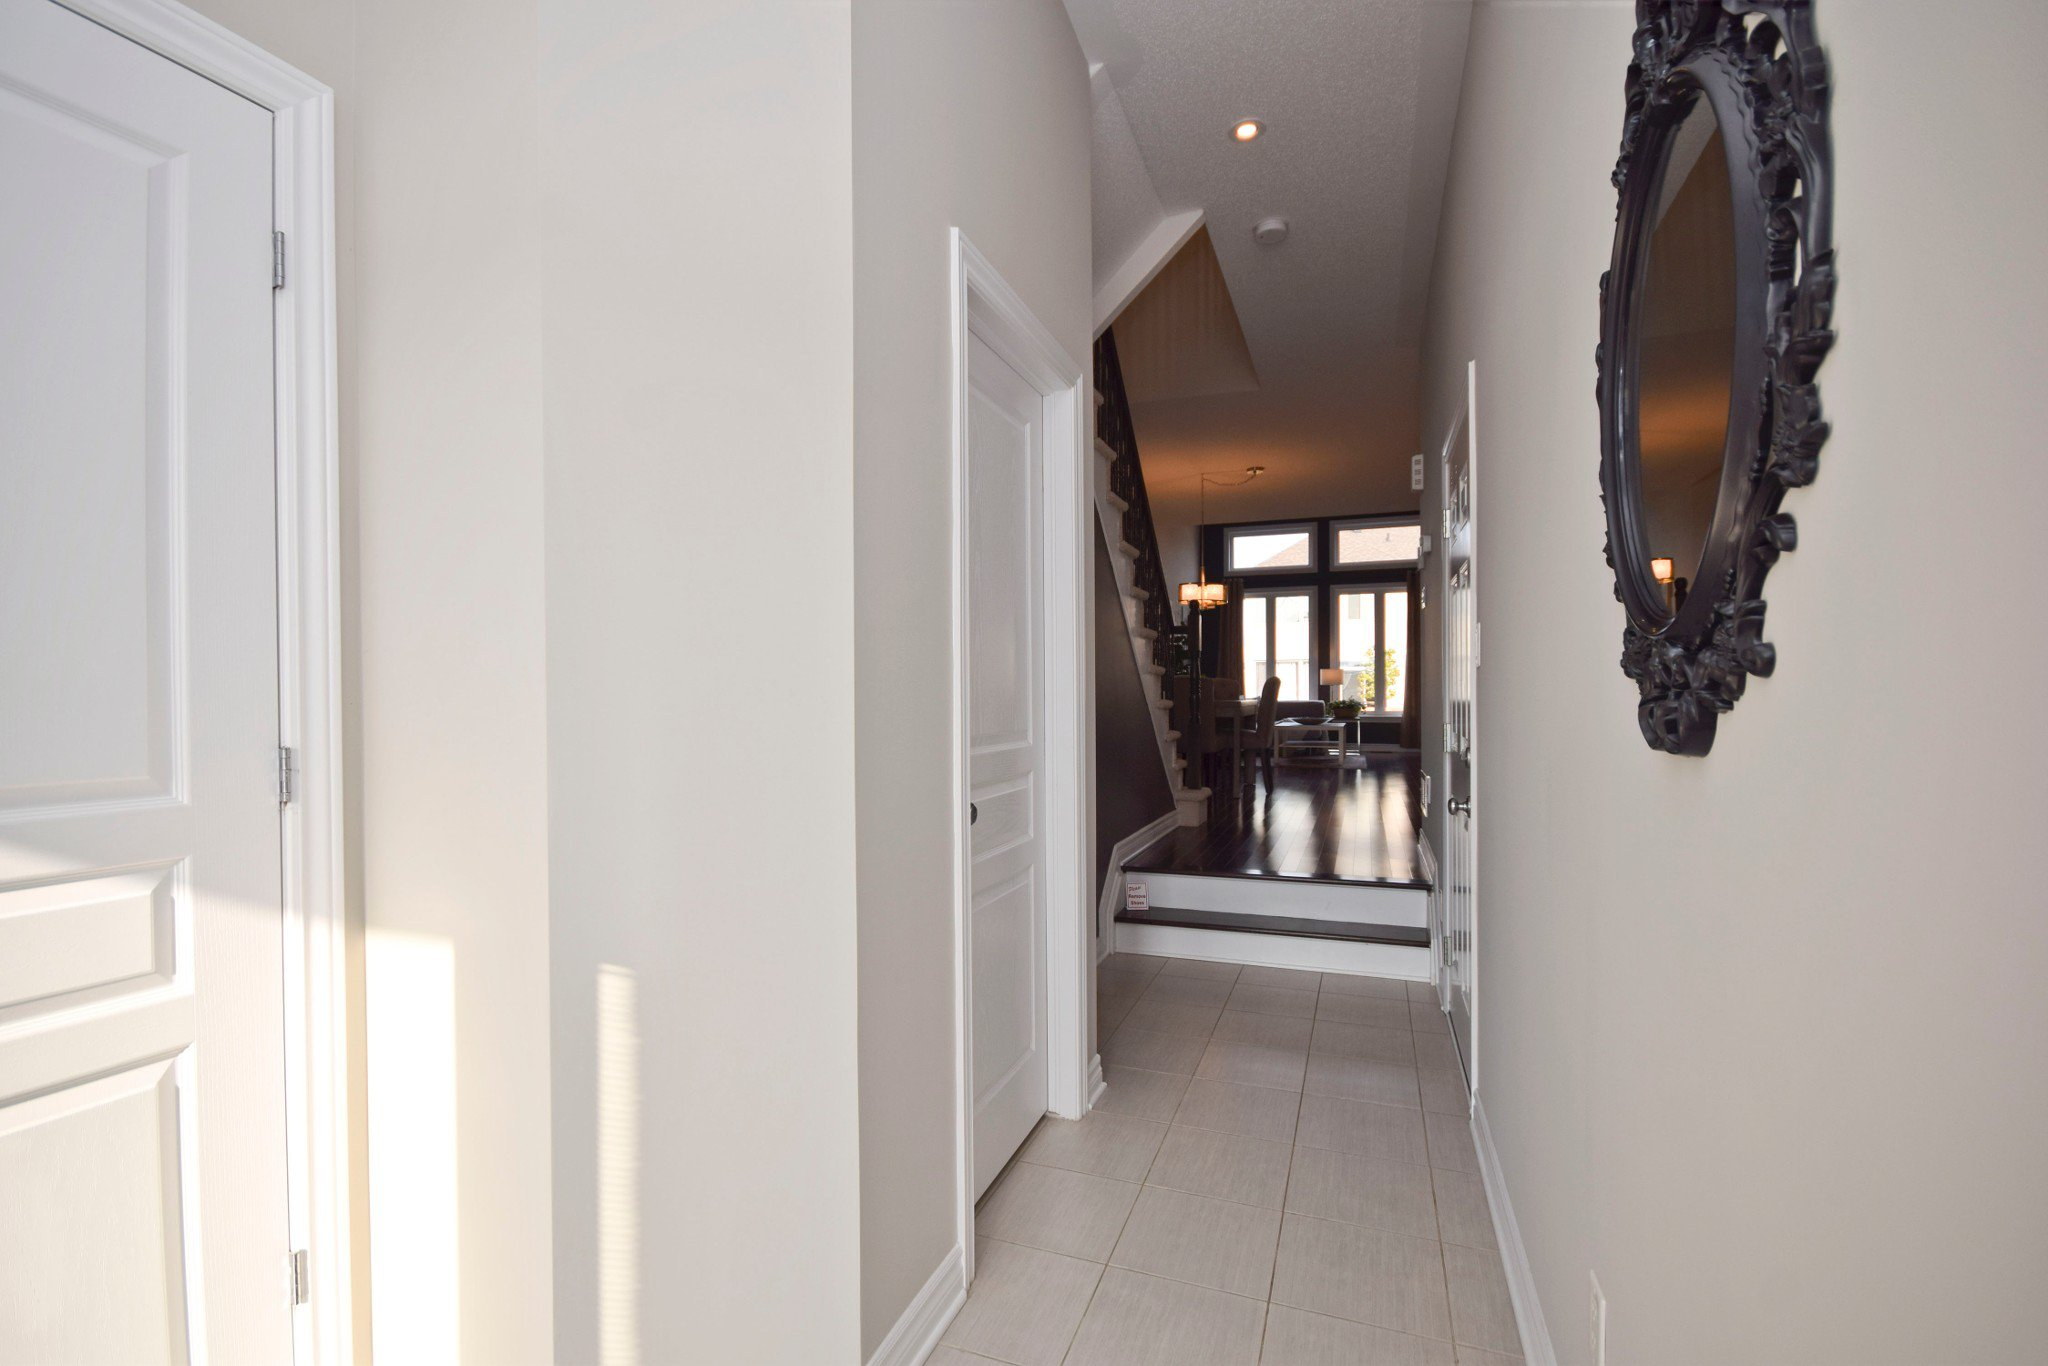 Photo 8: Photos: 131 Popplewell Crescent in Ottawa: Cedargrove / Fraserdale House for sale (Barrhaven)  : MLS®# 1130335